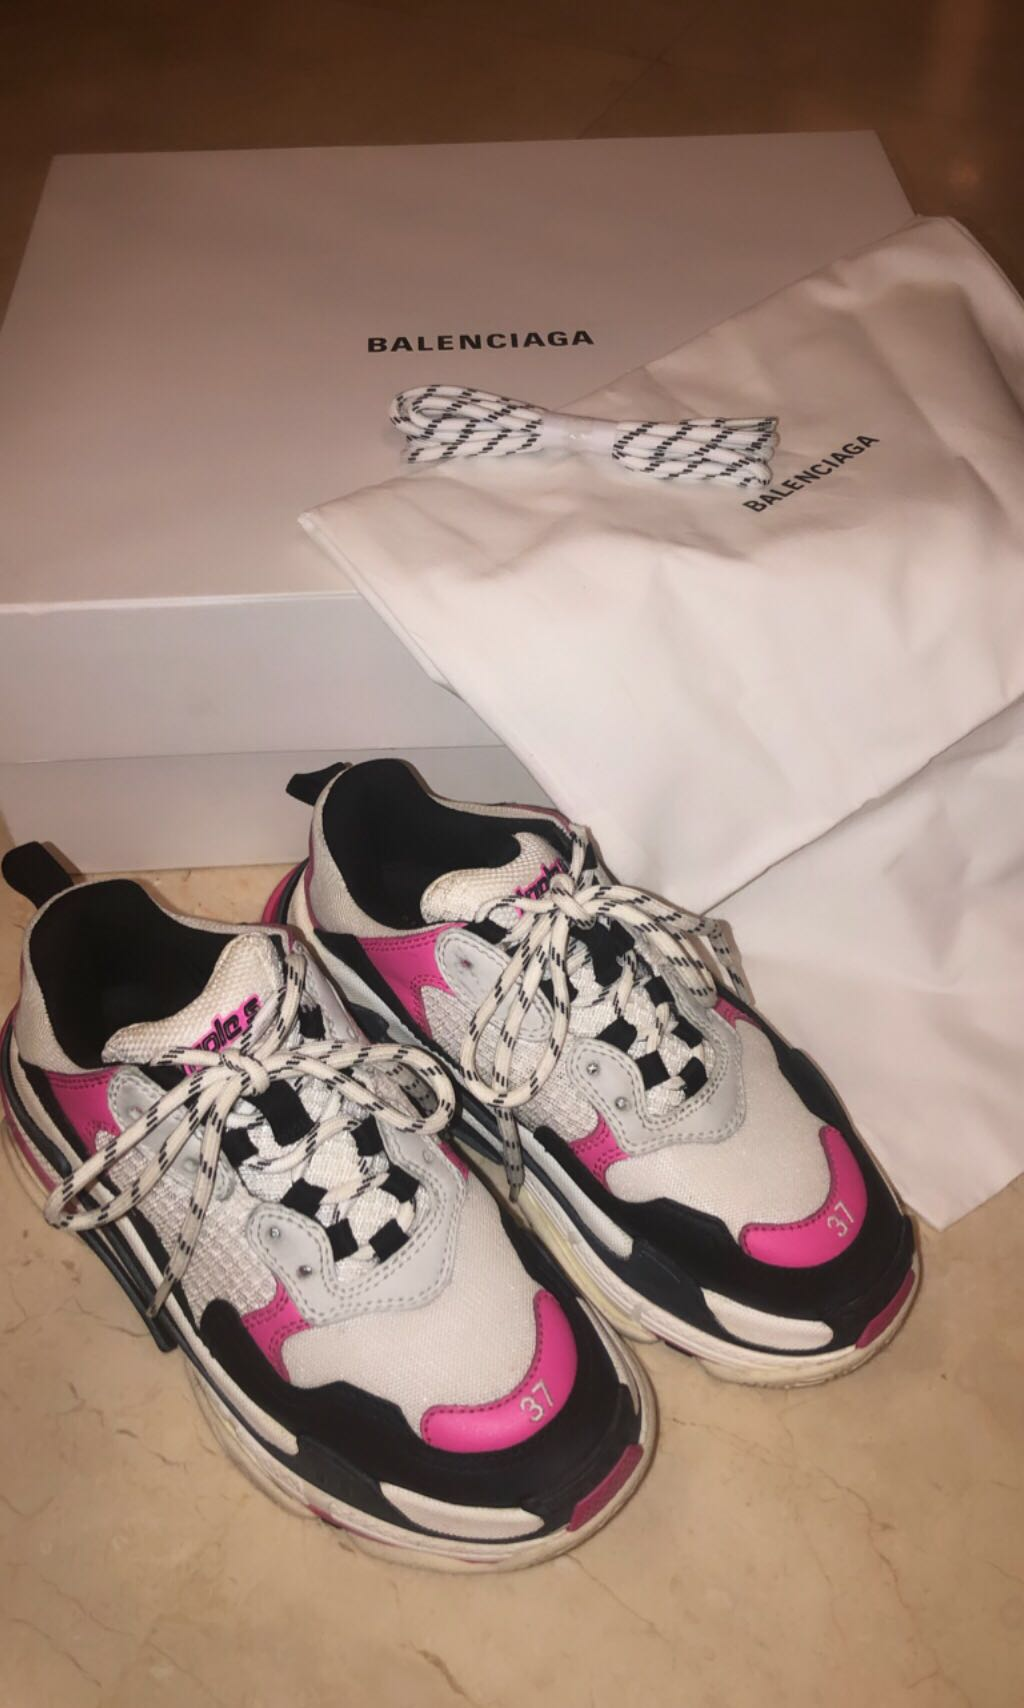 c8fa4f7326 BALENCIAGA Triple S pink, Women's Fashion, Shoes, Sneakers on Carousell